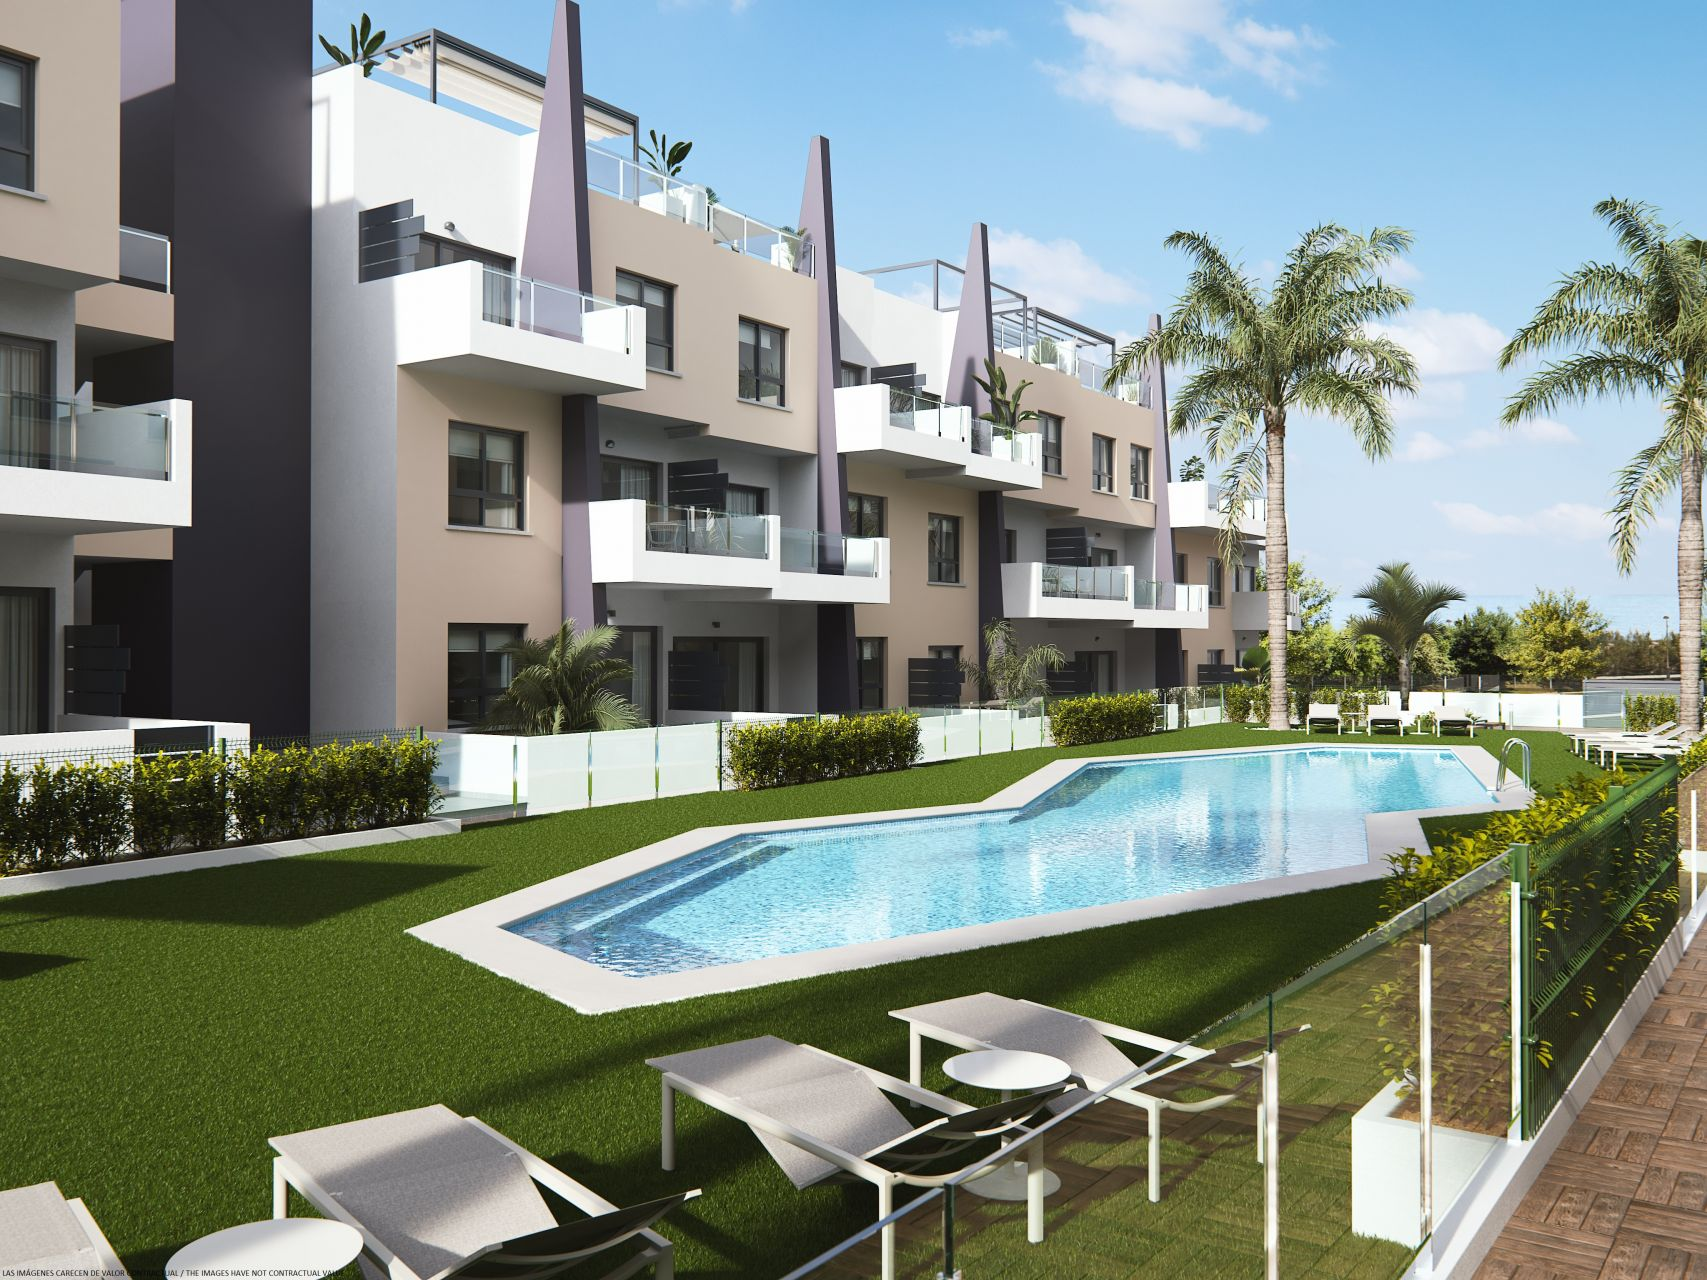 Exclusive apartments in the beautiful location of Benidorm 27